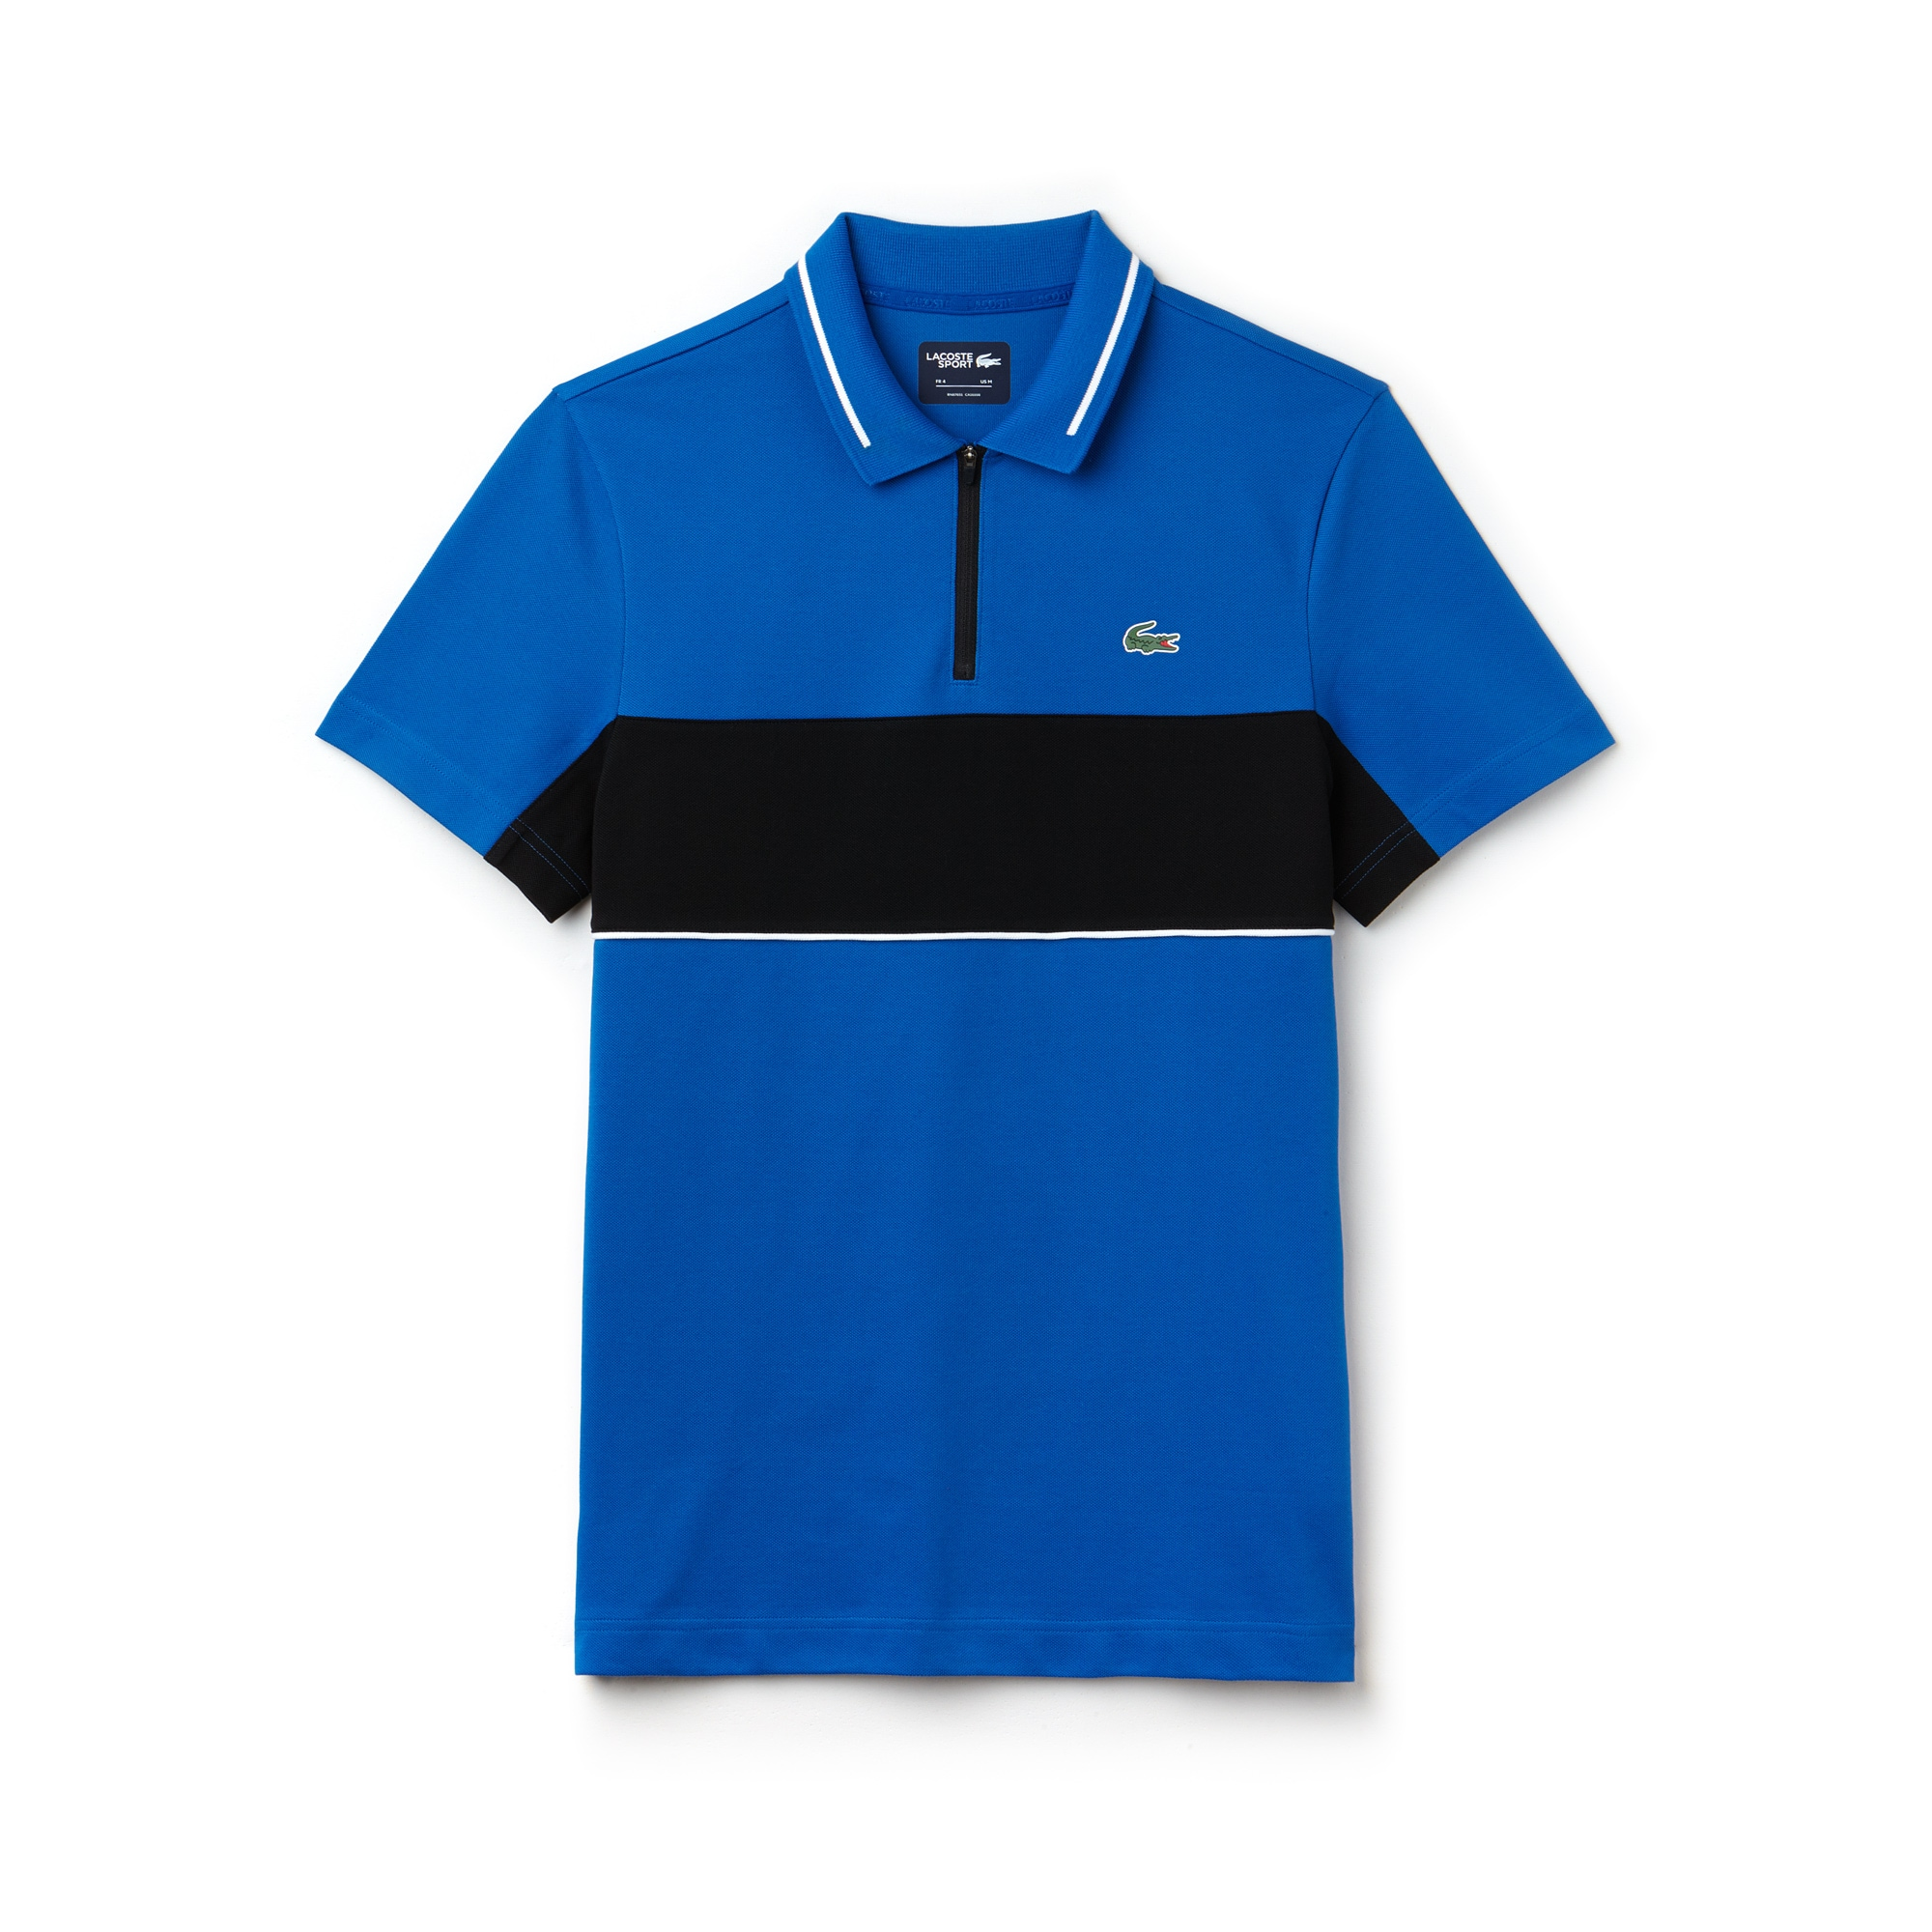 Men's SPORT Contrast Bands Technical Piqué Golf Polo